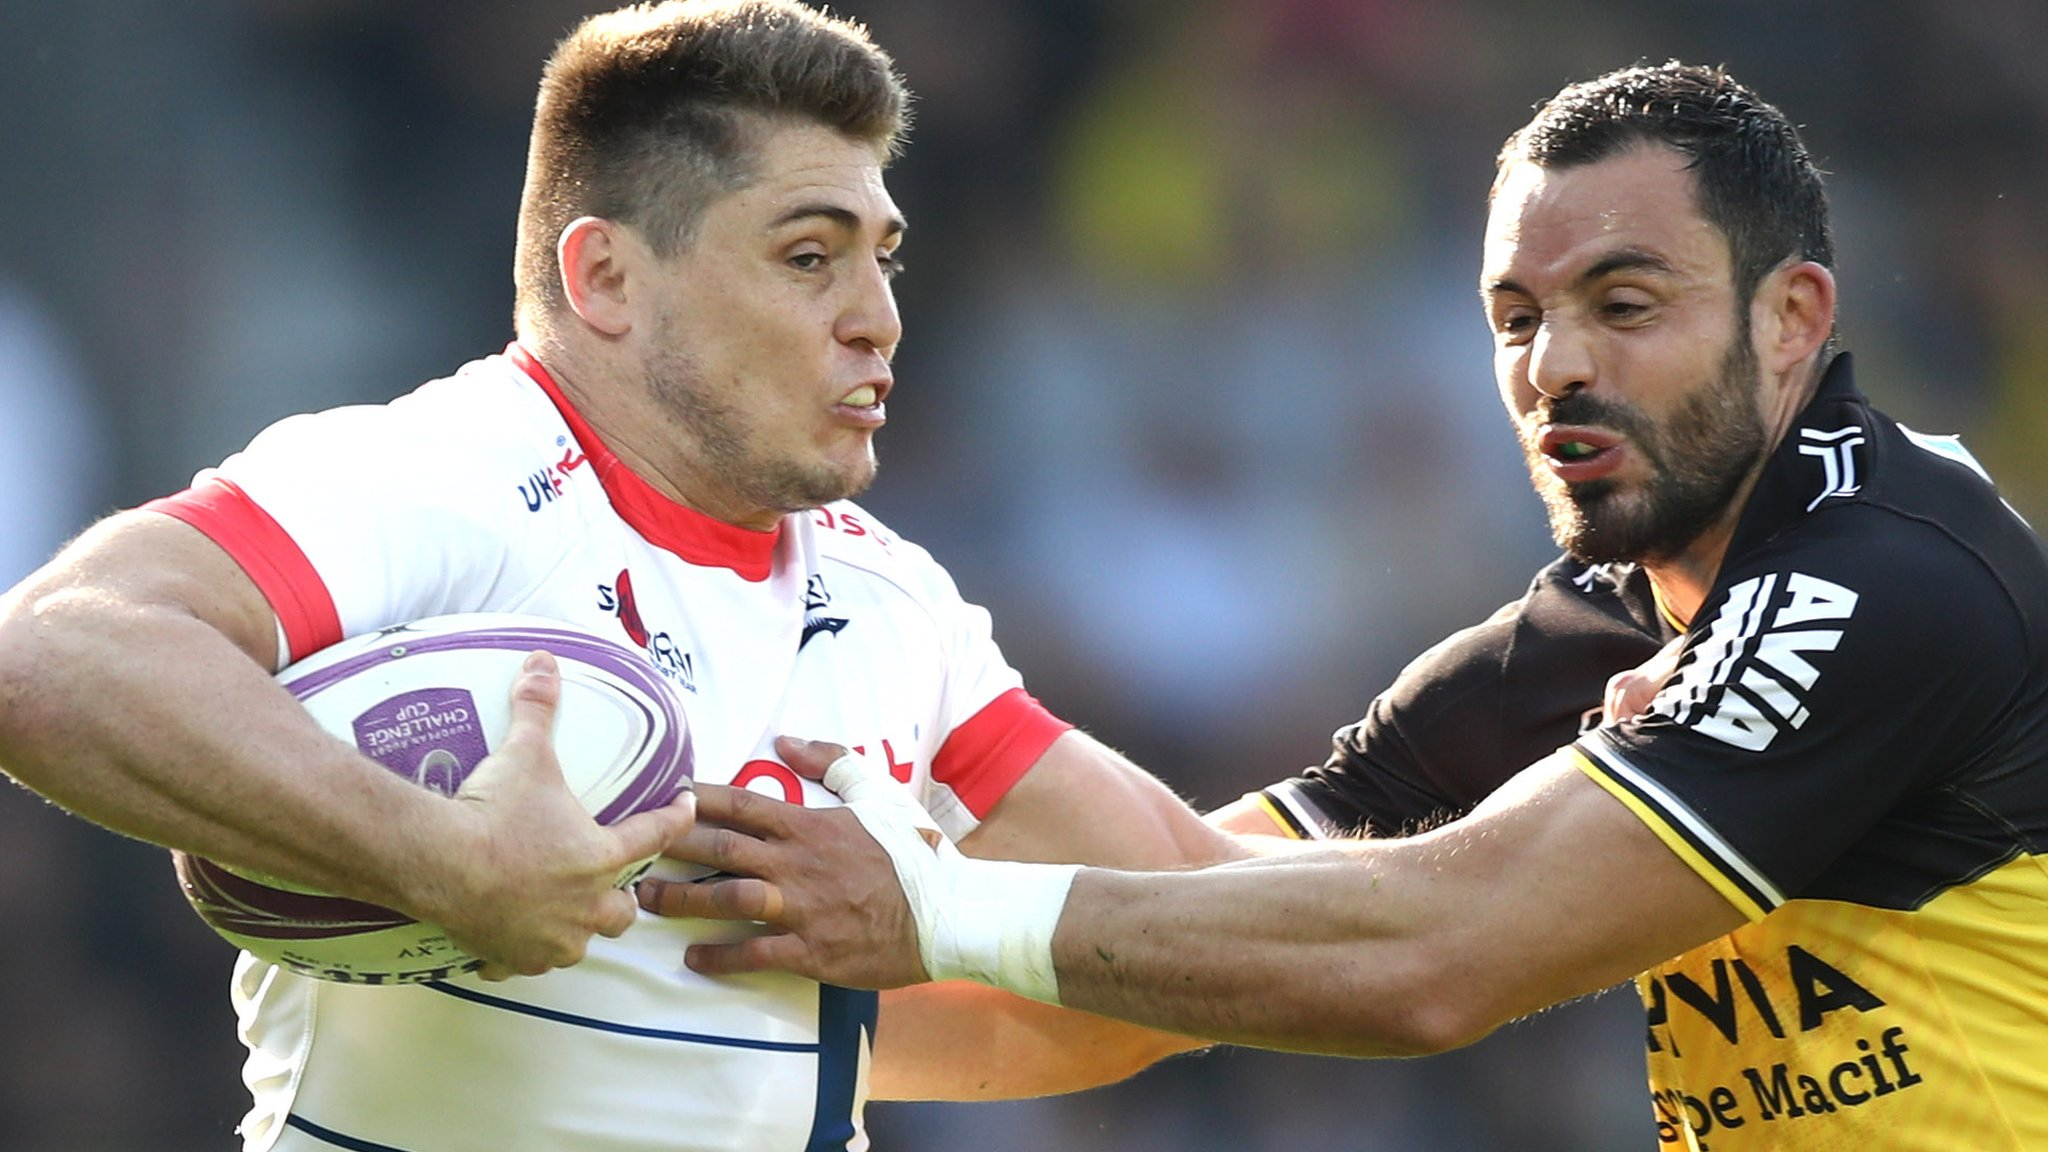 European Challenge Cup Semi-Final: La Rochelle 24-20 Sale Sharks